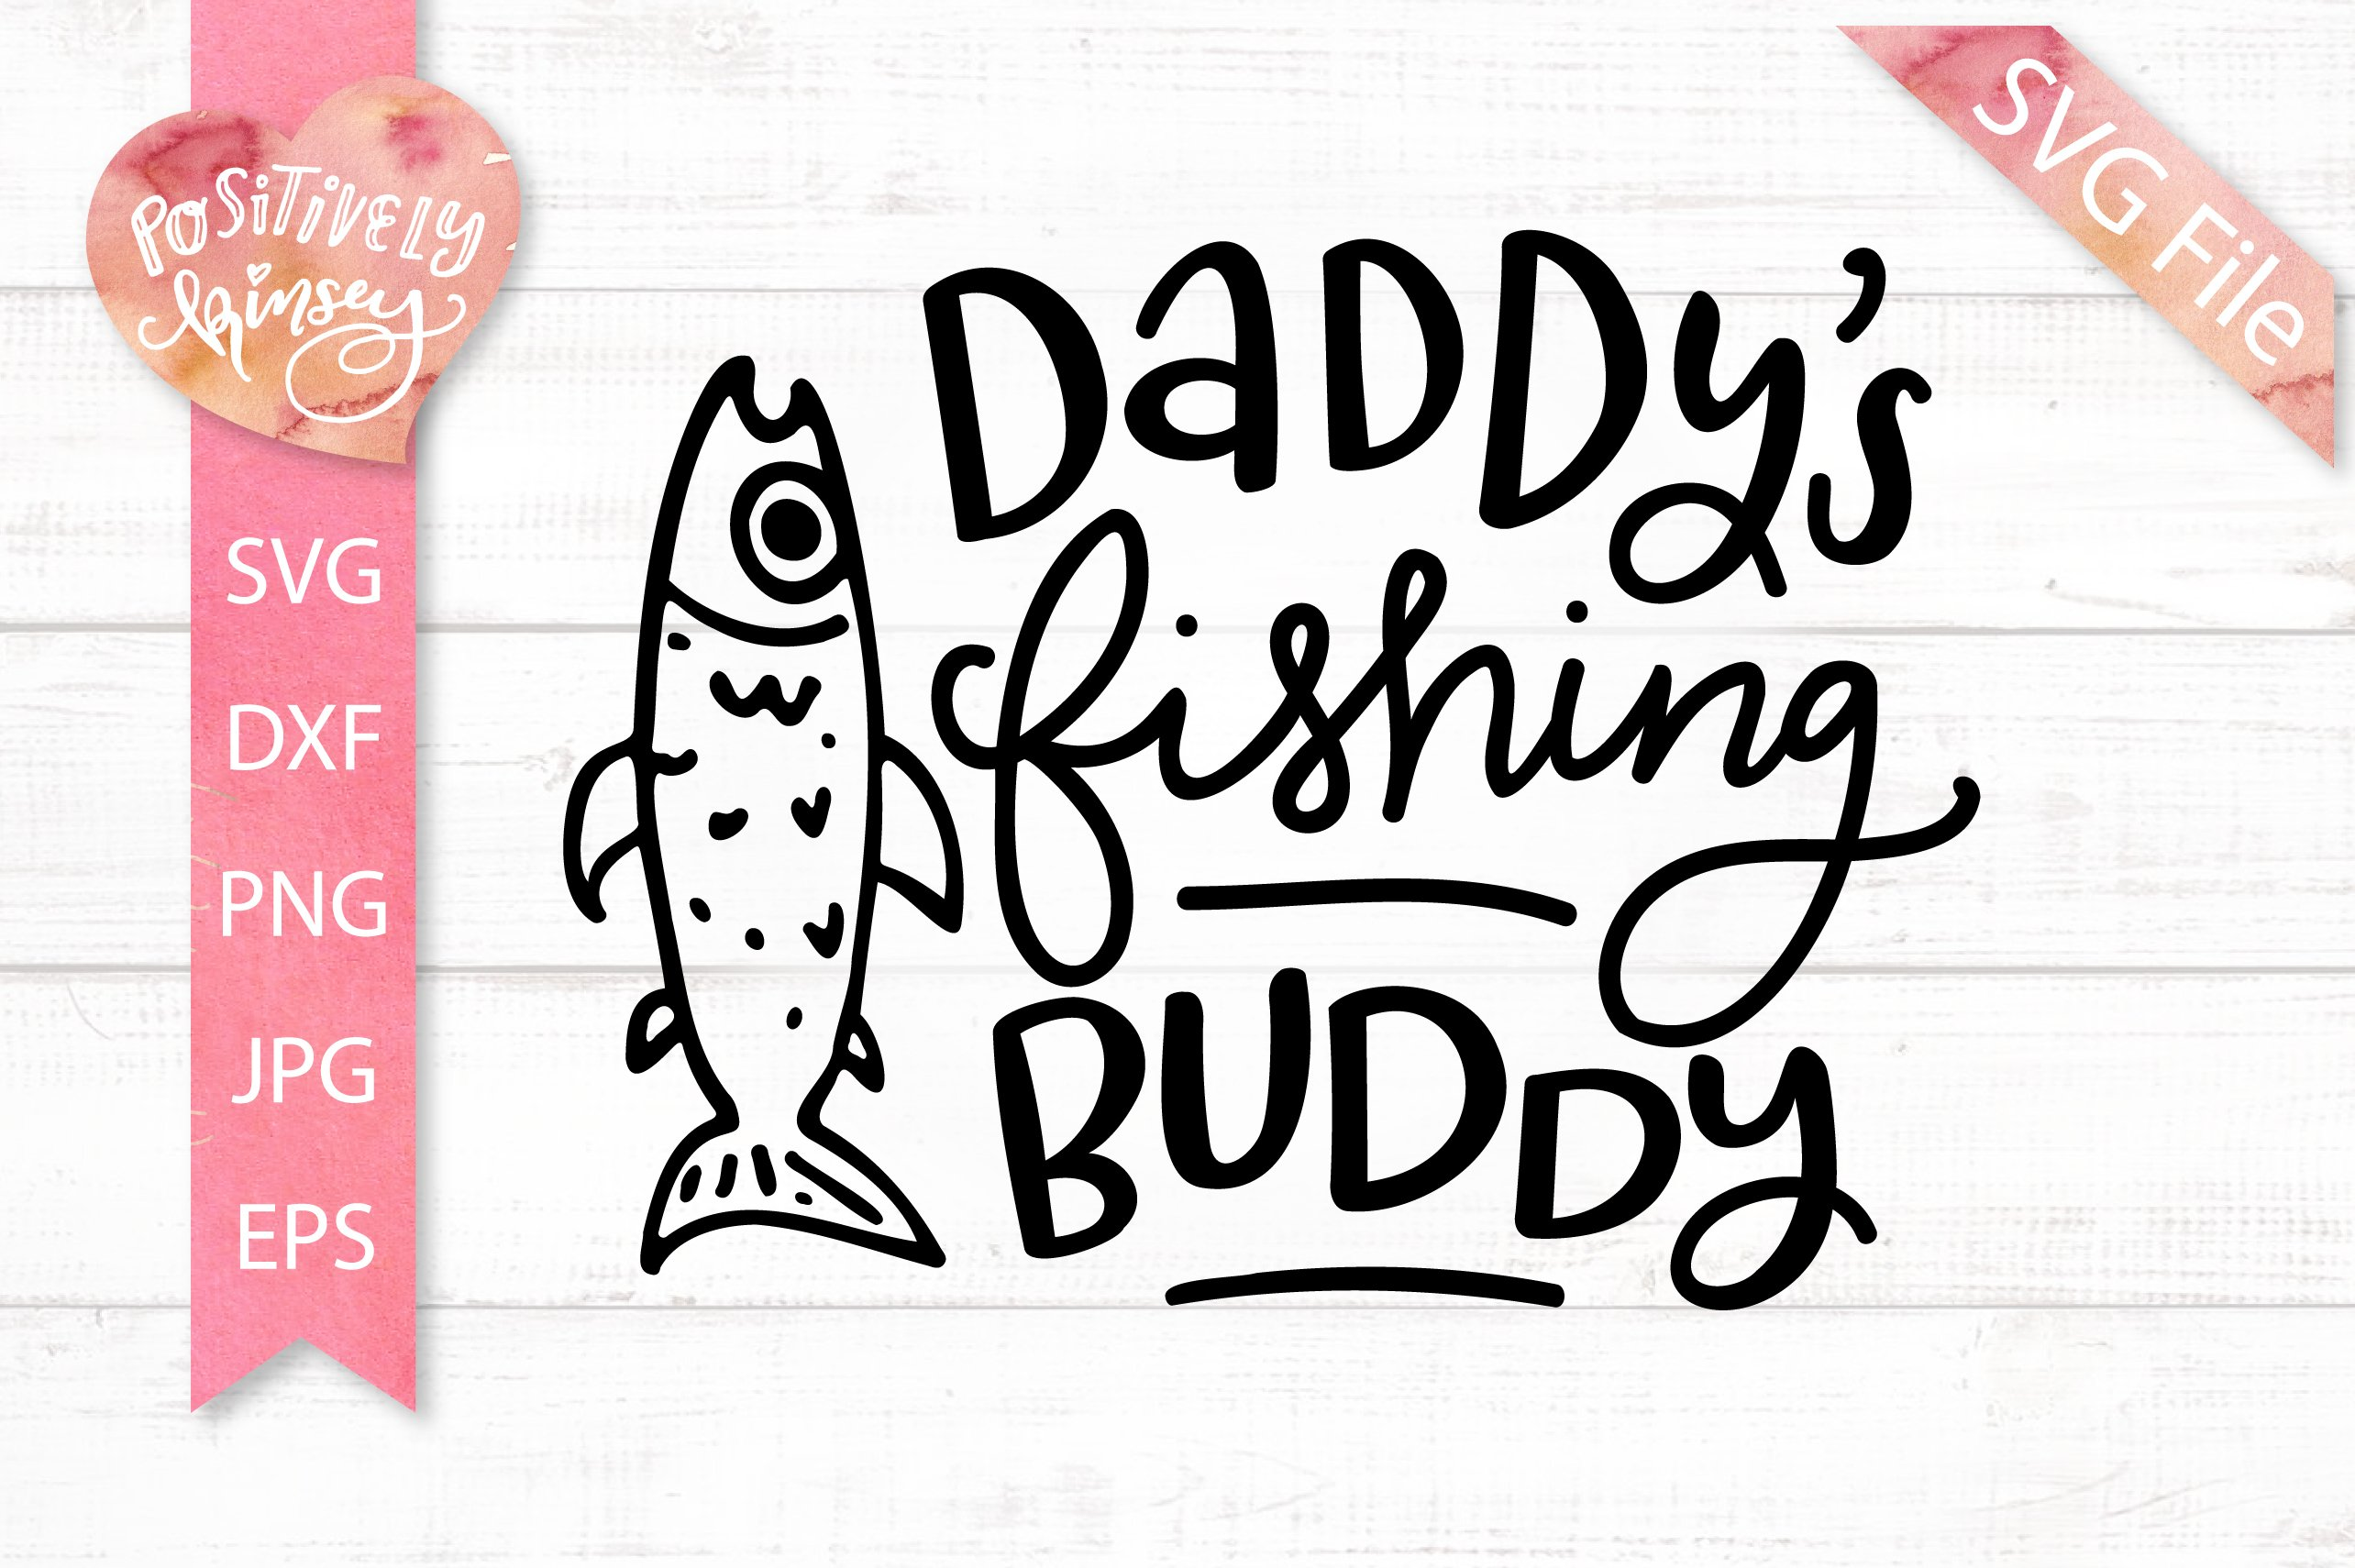 Download Daddy S Fishing Buddy Svg Cute Fishing Svg For Kids Baby 571012 Svgs Design Bundles